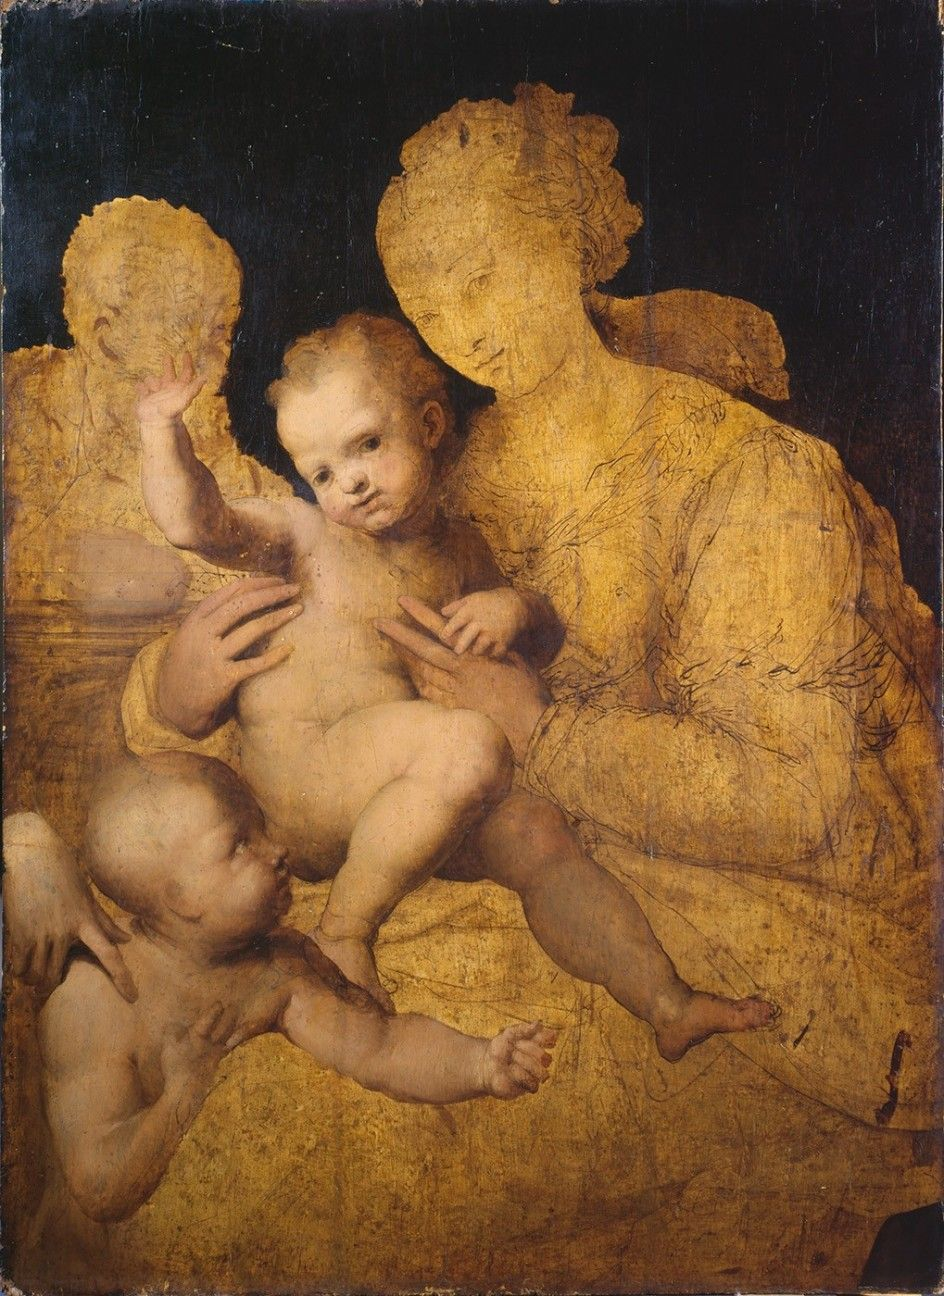 Perino del Vaga (1501 - 1547)- Holy Family with Saint John the Baptist, 1528-37